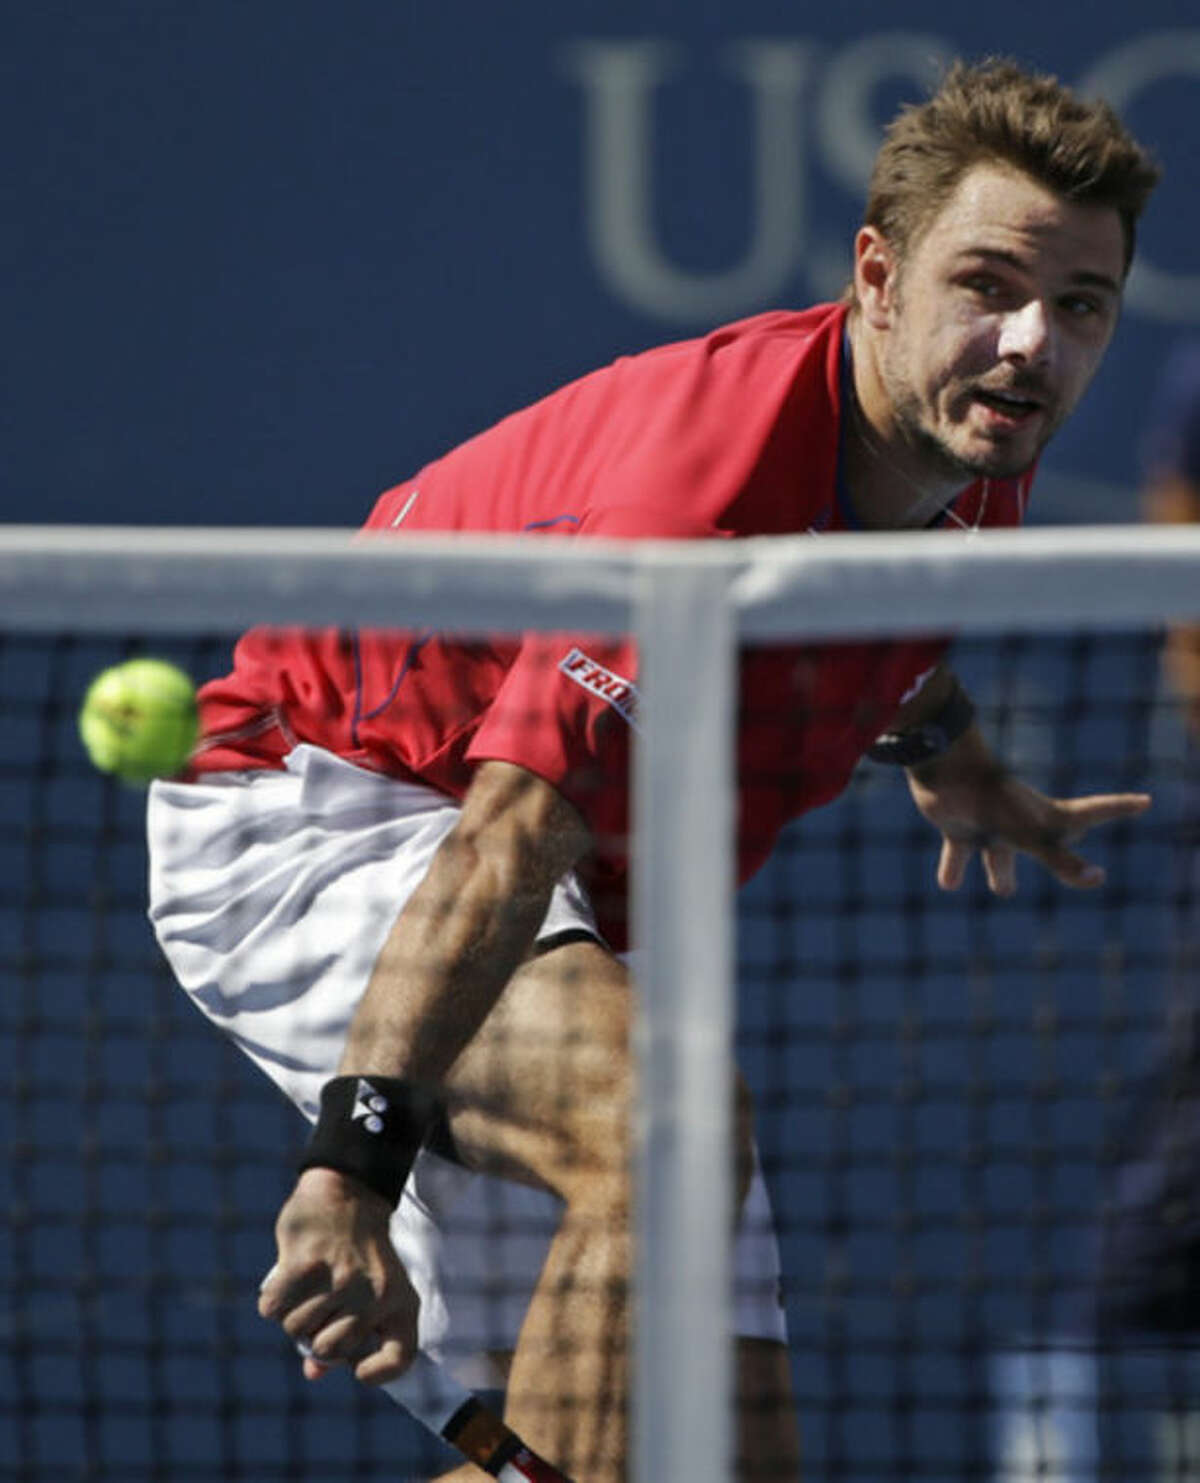 Stanislas Wawrinka, of Switzerland, returns a shot to Andy Murray, of Great Britain, during the quarterfinals of the 2013 U.S. Open tennis tournament, Thursday, Sept. 5, 2013, in New York. (AP Photo/David Goldman)